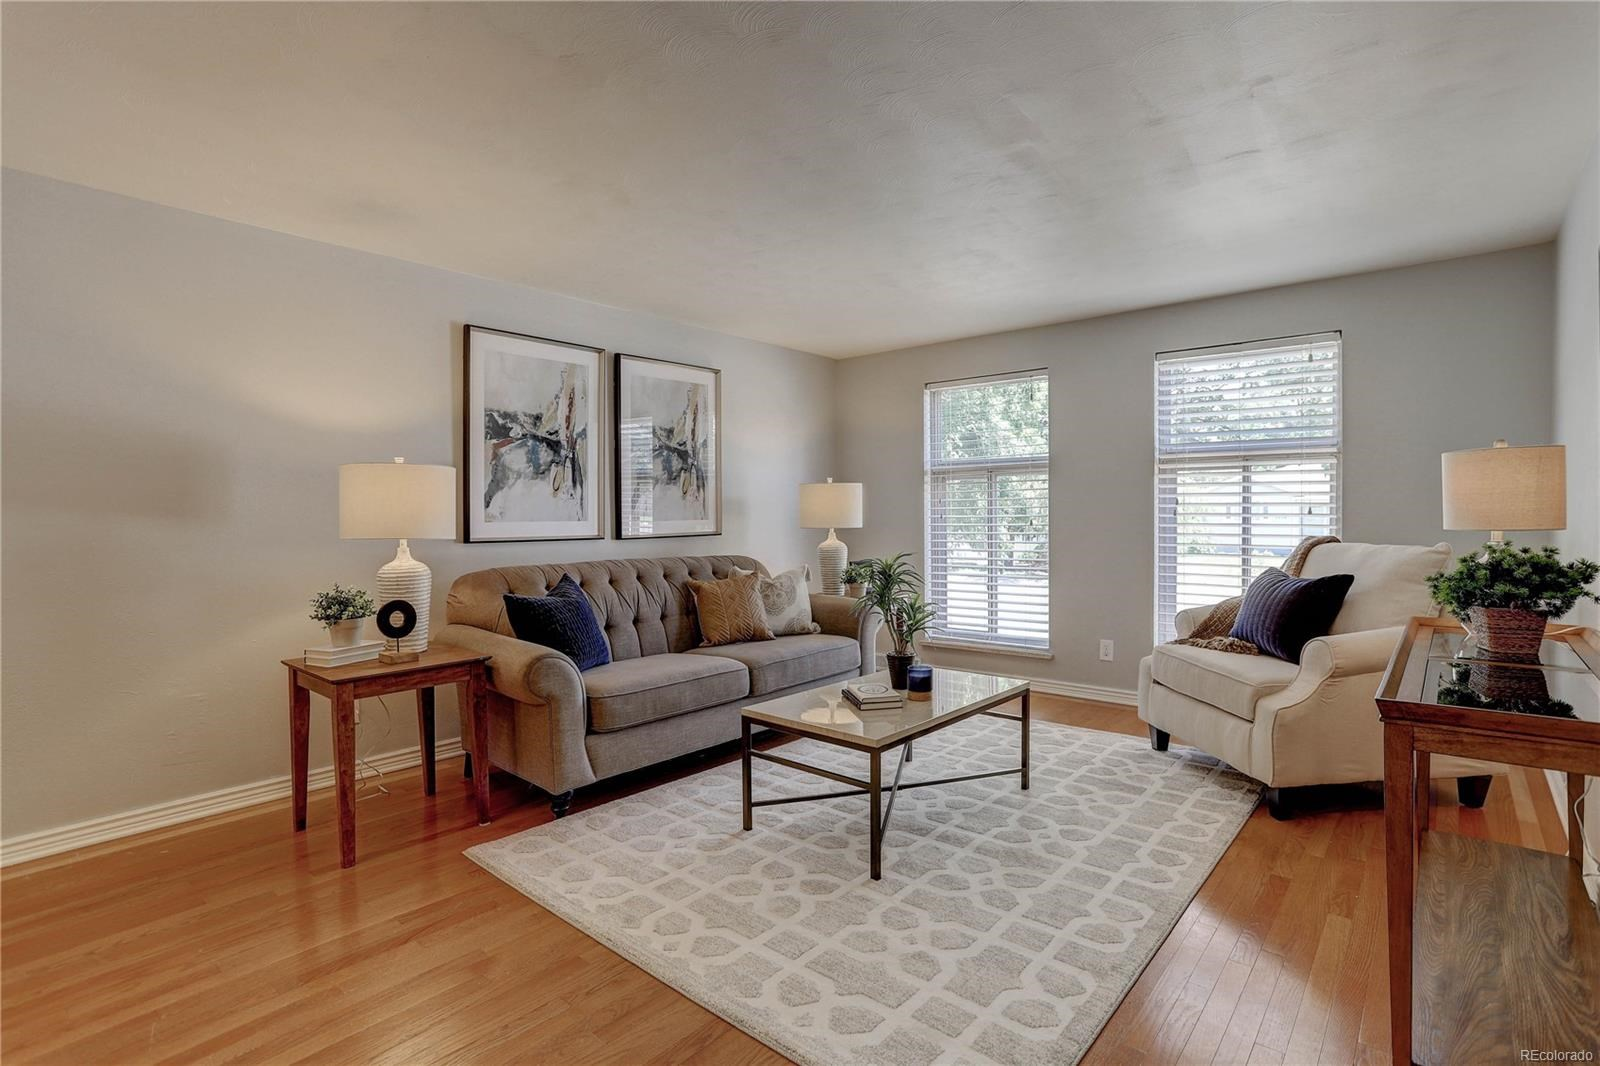 MLS# 2968148 - 11 - 2931 S Downing Street, Englewood, CO 80113